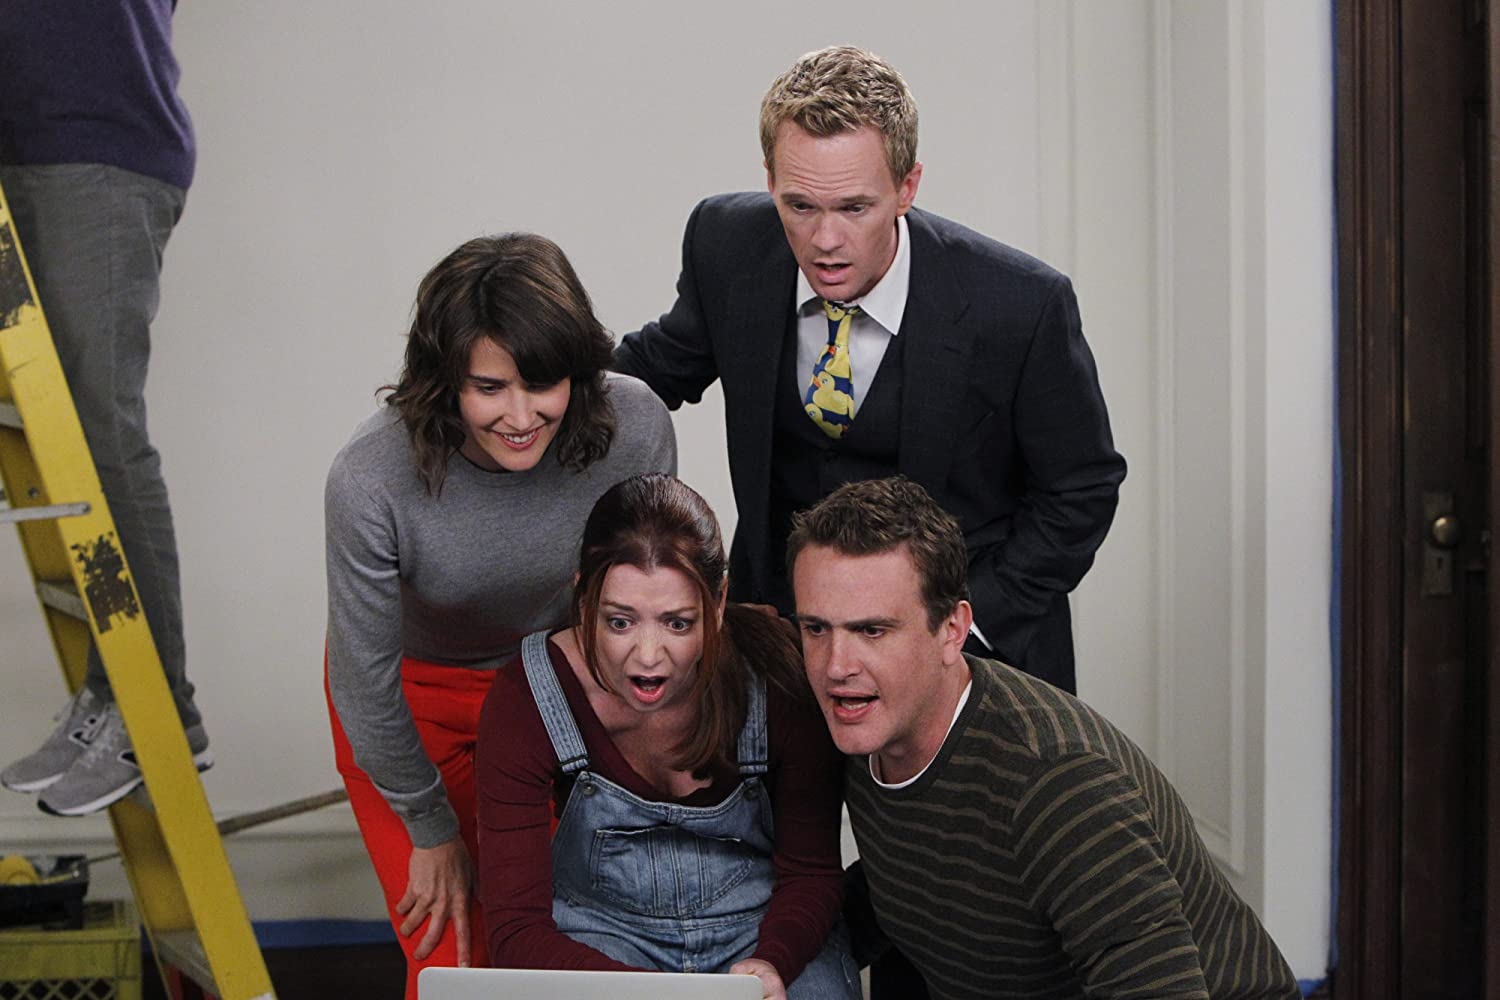 Neil Patrick Harris, Alyson Hannigan, Jason Segel, and Cobie Smulders in How I Met Your Mother (2005)